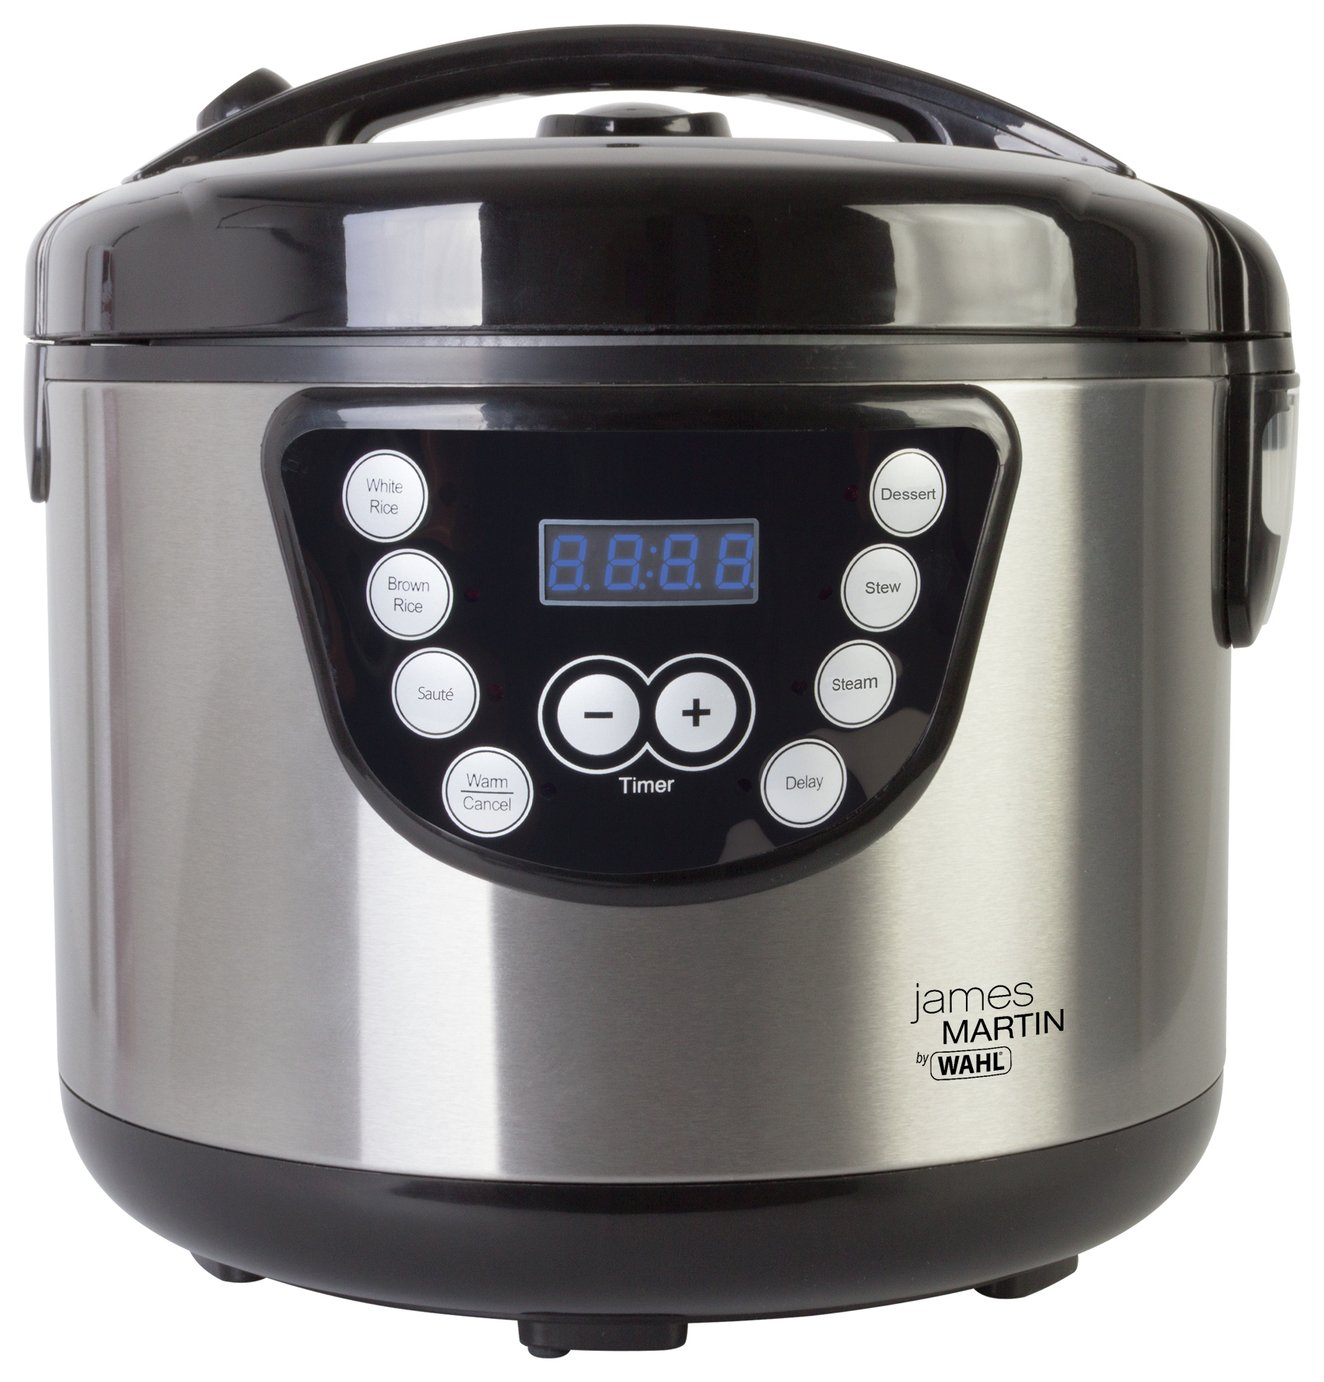 james-martin-4l-multi-cooker